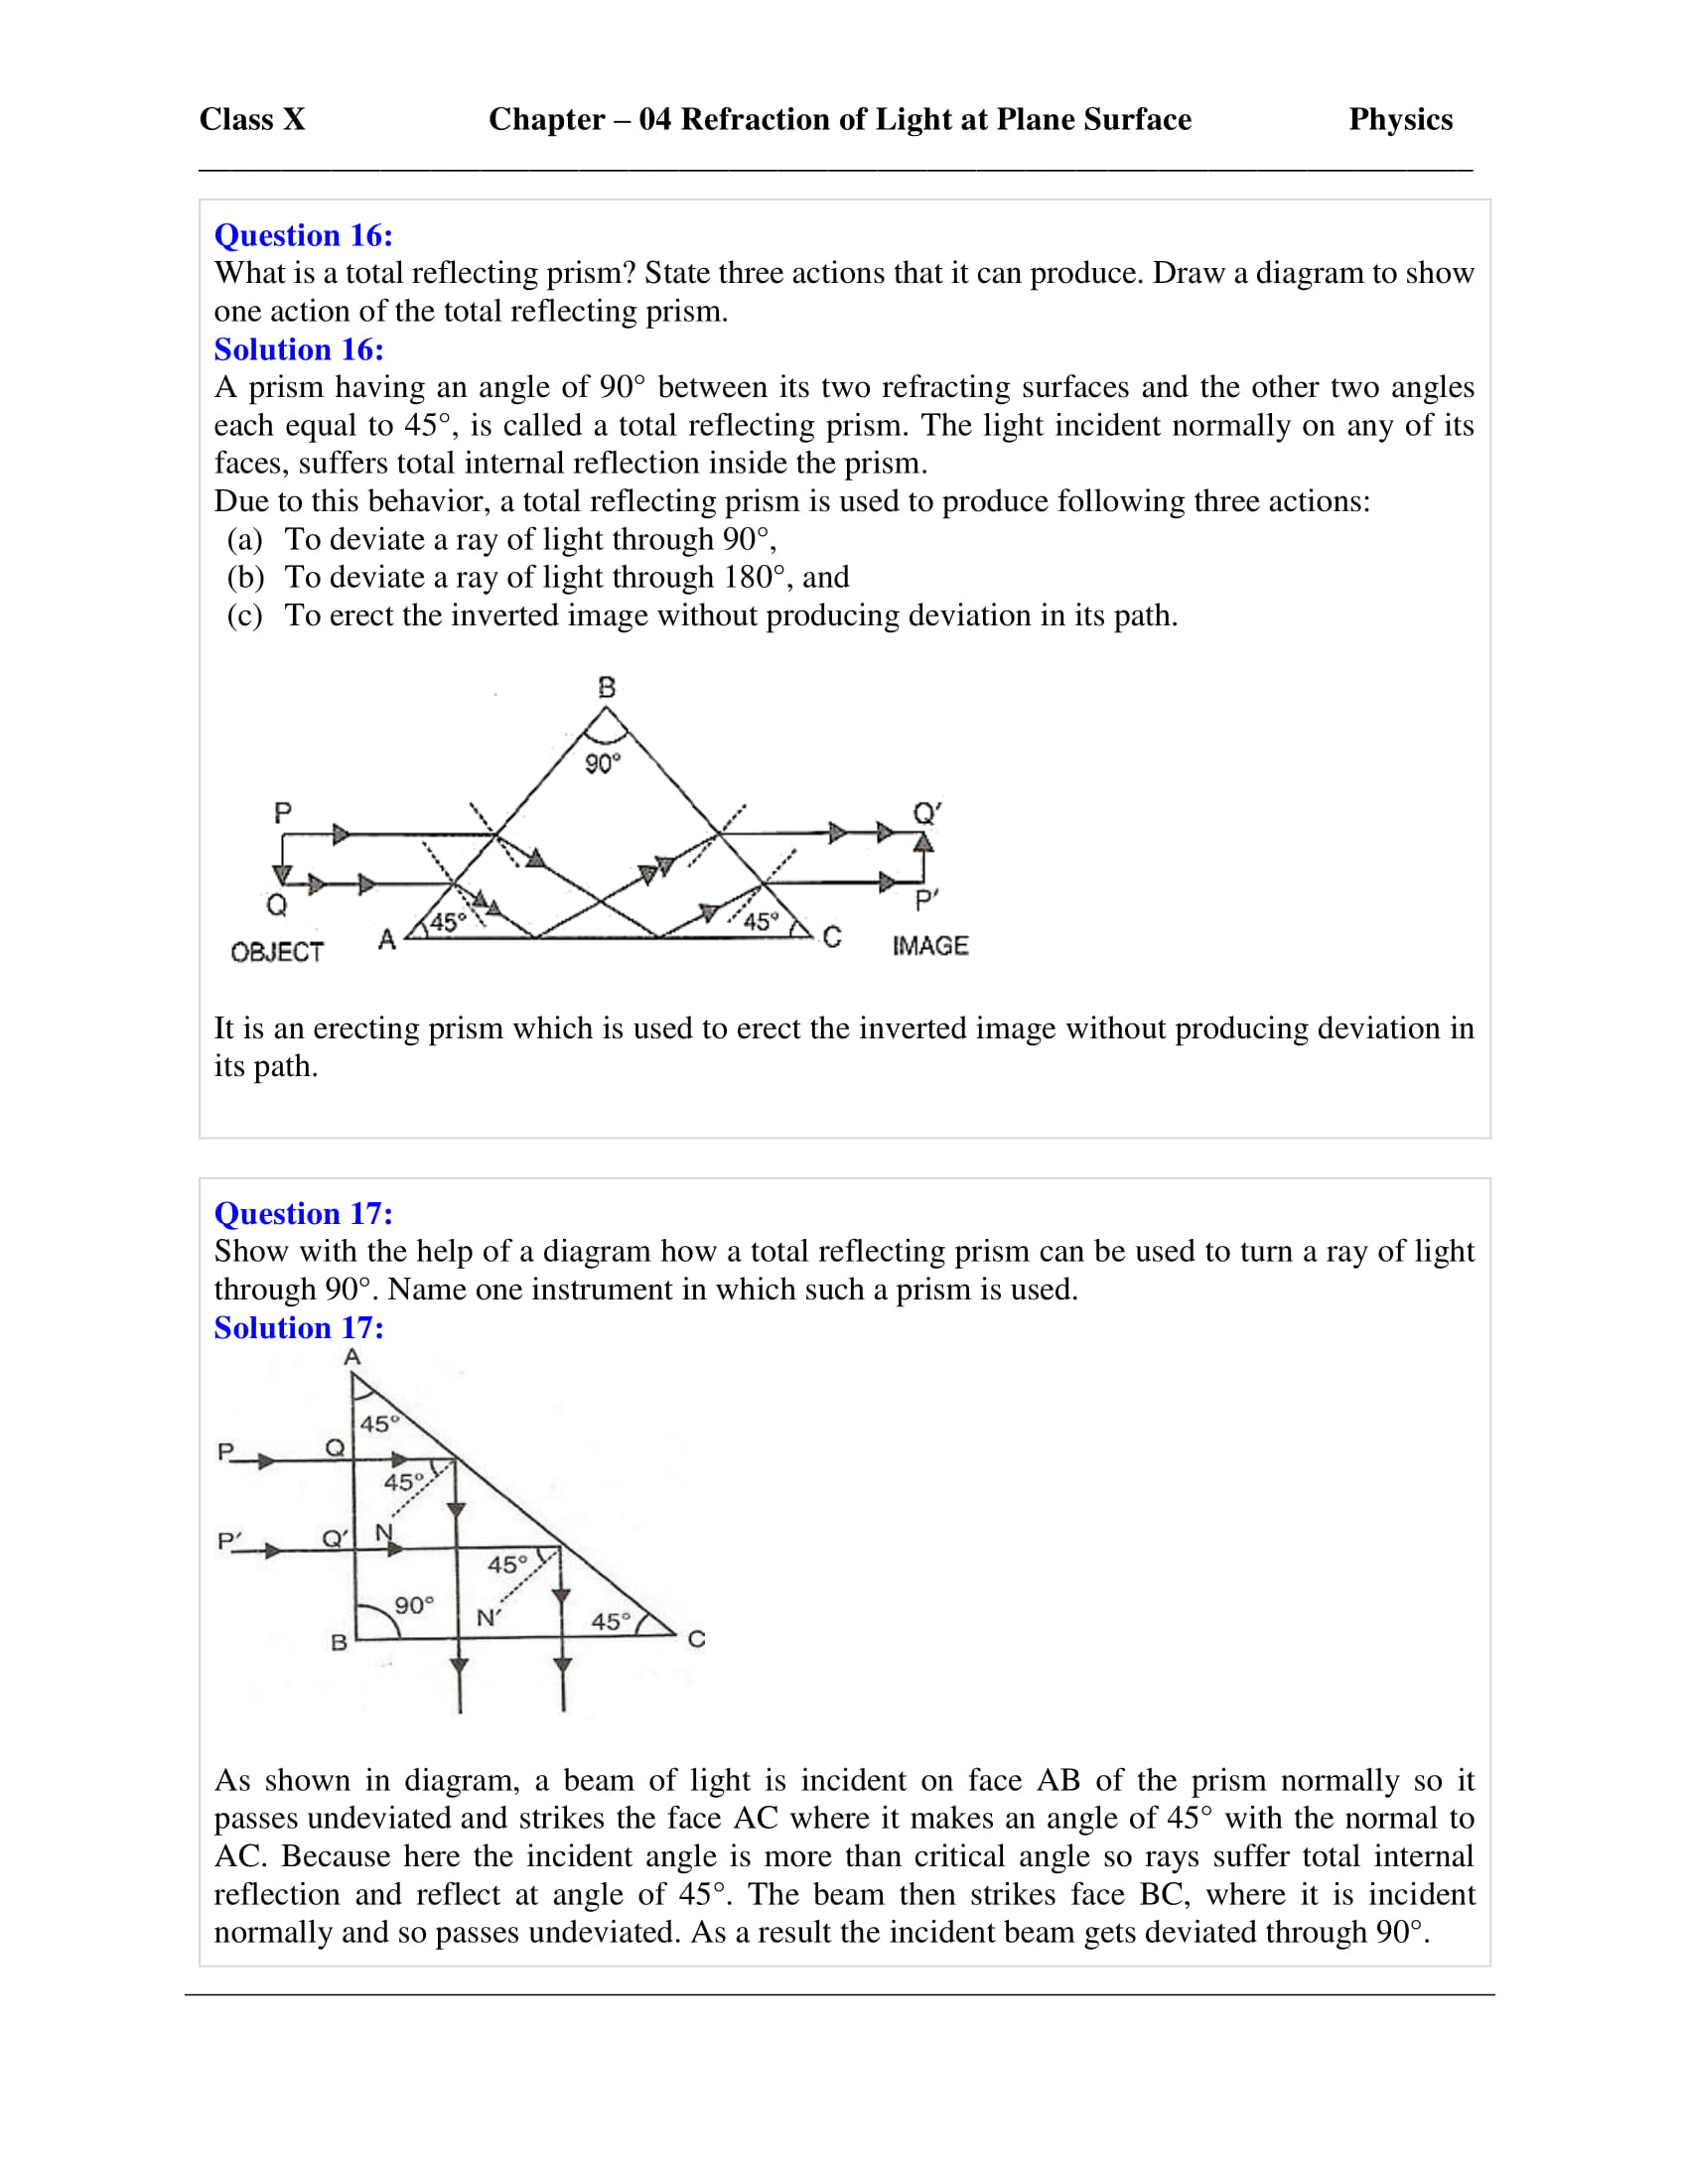 icse-selina-physics-solutions-class-10-chapter-4-refraction-of-light-at-plane-surfaces-34